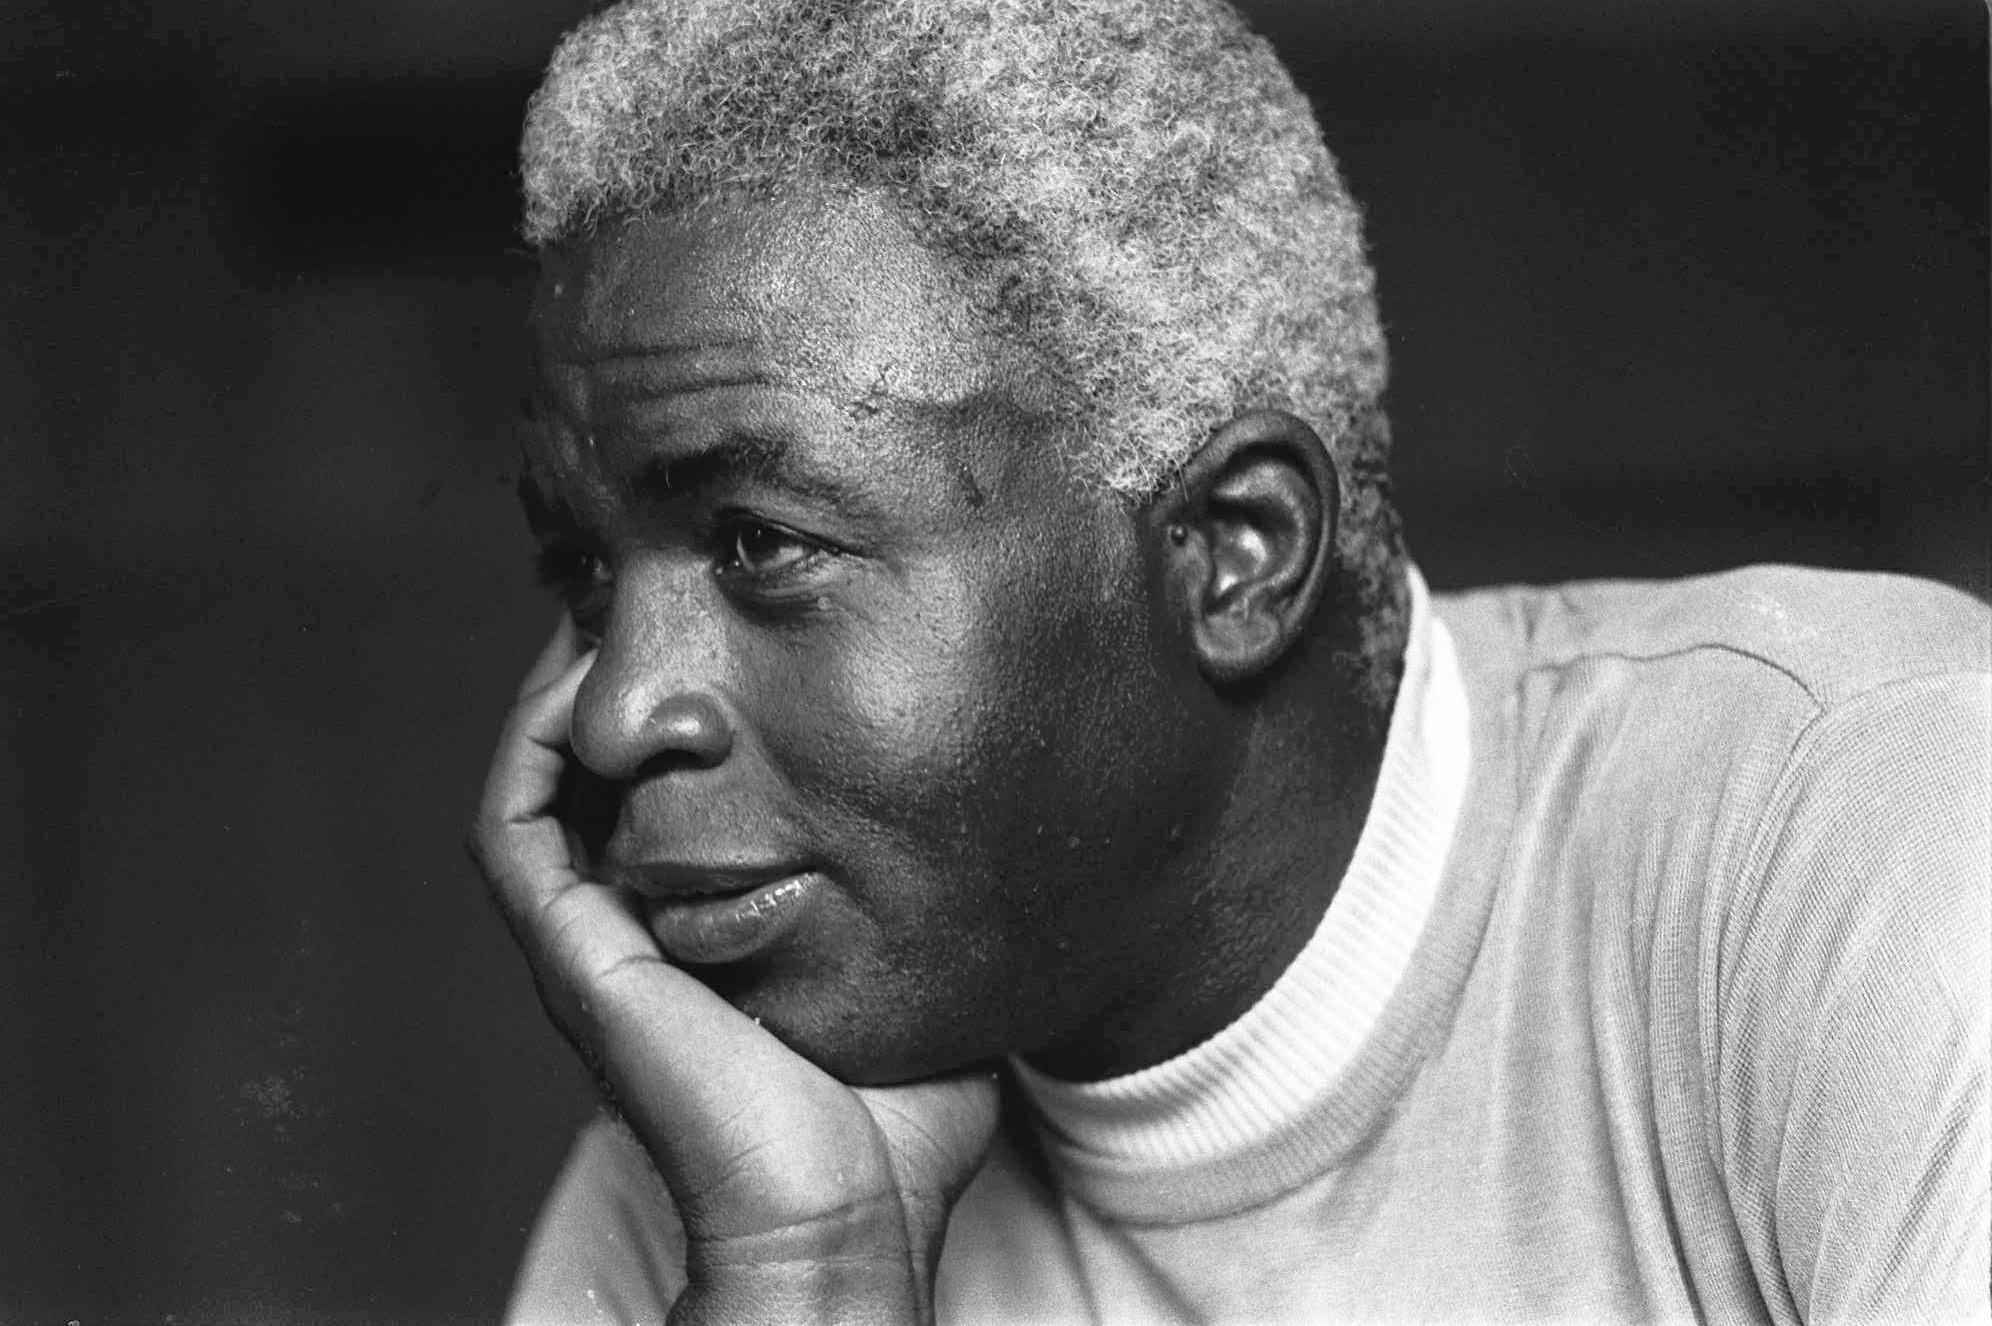 a review of the life of jackie robinson By david bauder new york (ap) — pbs' documentary on the life of jackie robinson gets most interesting when the gloves and bats are put away for good.